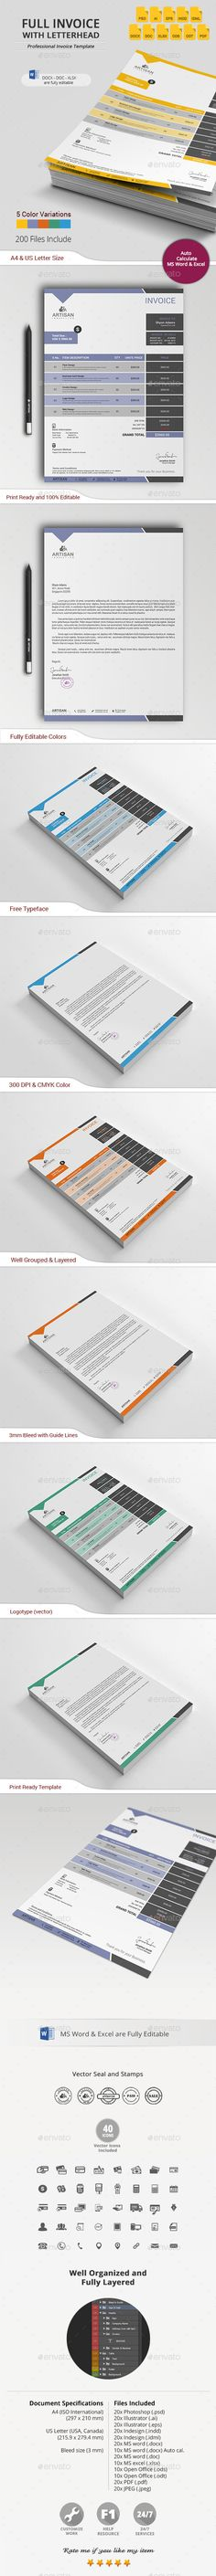 #Invoice with #Letterhead - #Proposals & Invoices #Stationery Download here: https://graphicriver.net/item/invoice-with-letterhead/10782776?ref=alena994